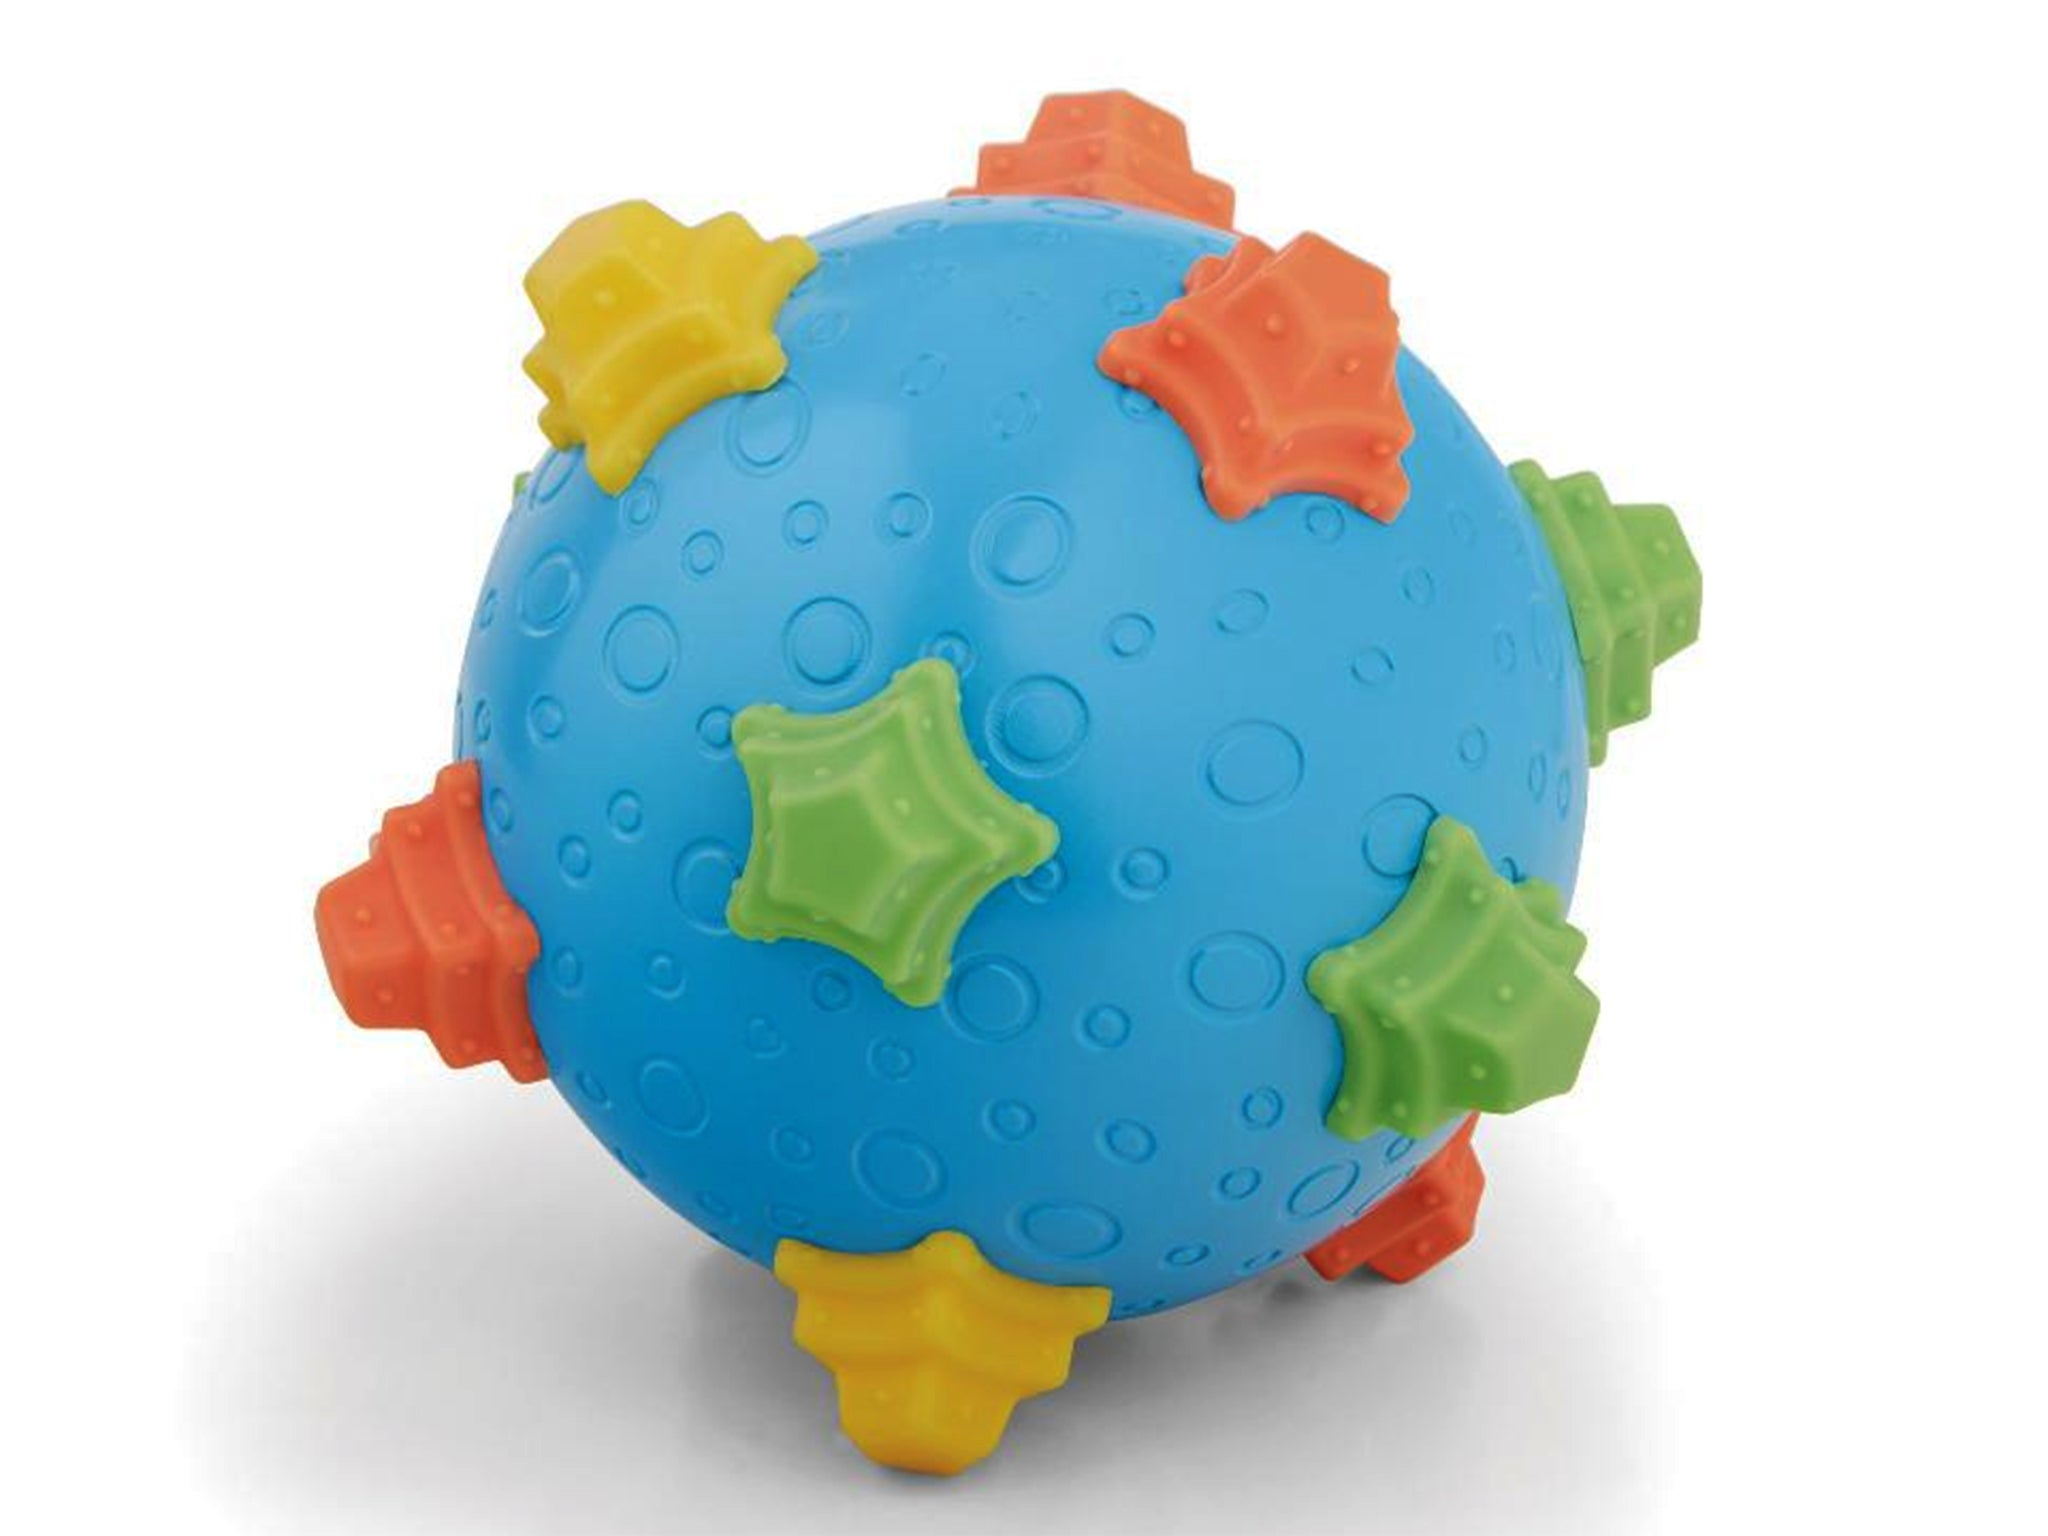 Bruin Infant Wiggle Ball: Toys R Us urgently recalls baby toy over choking fears   The Independent